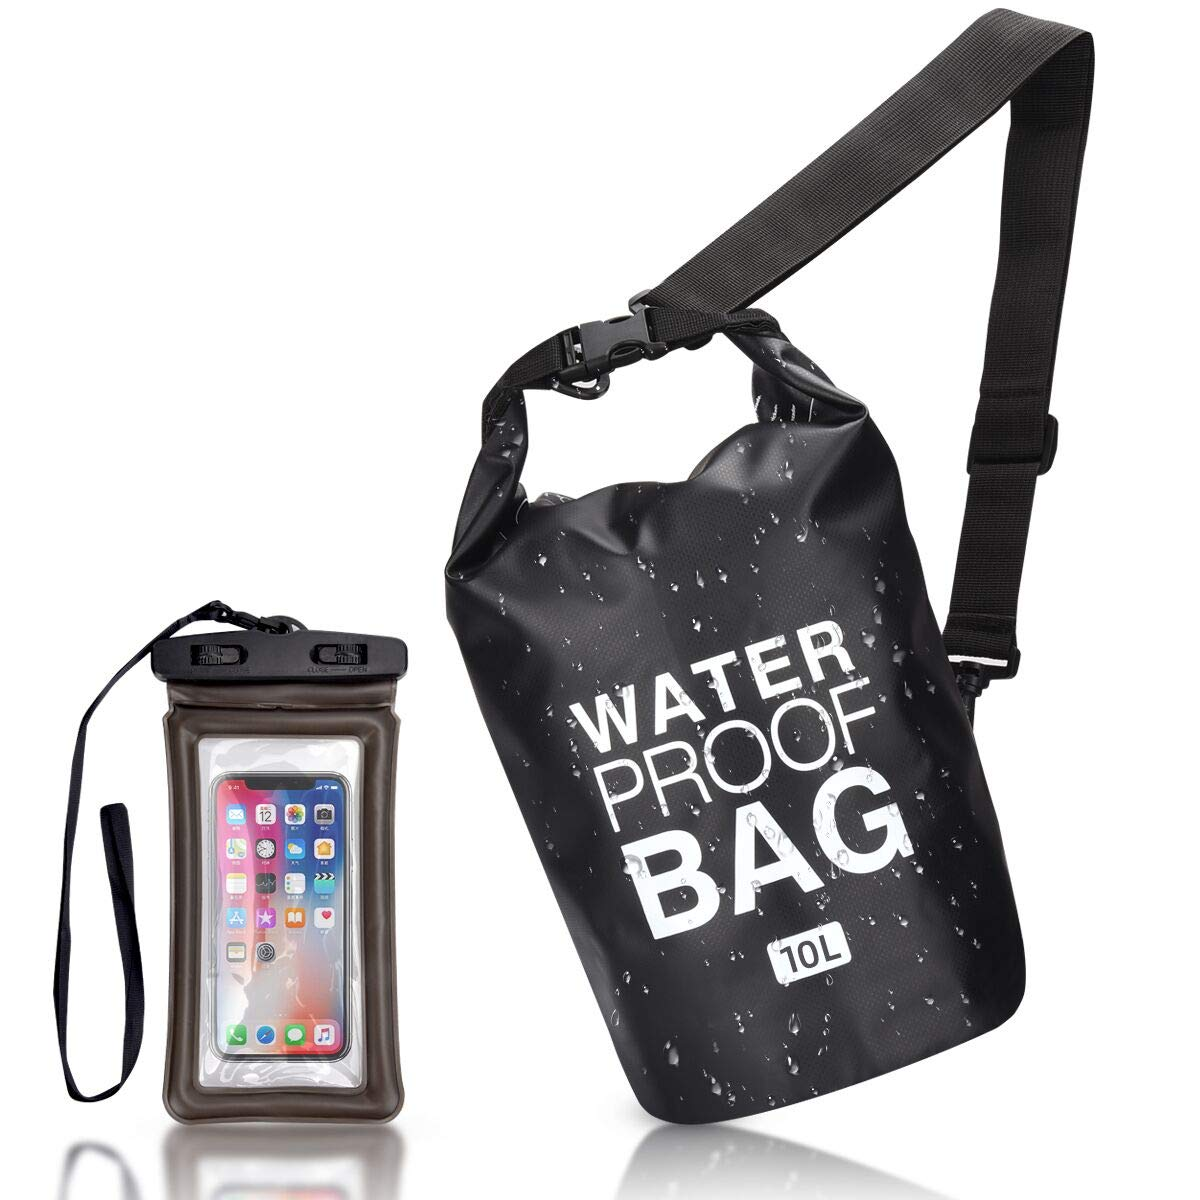 Great water bag!